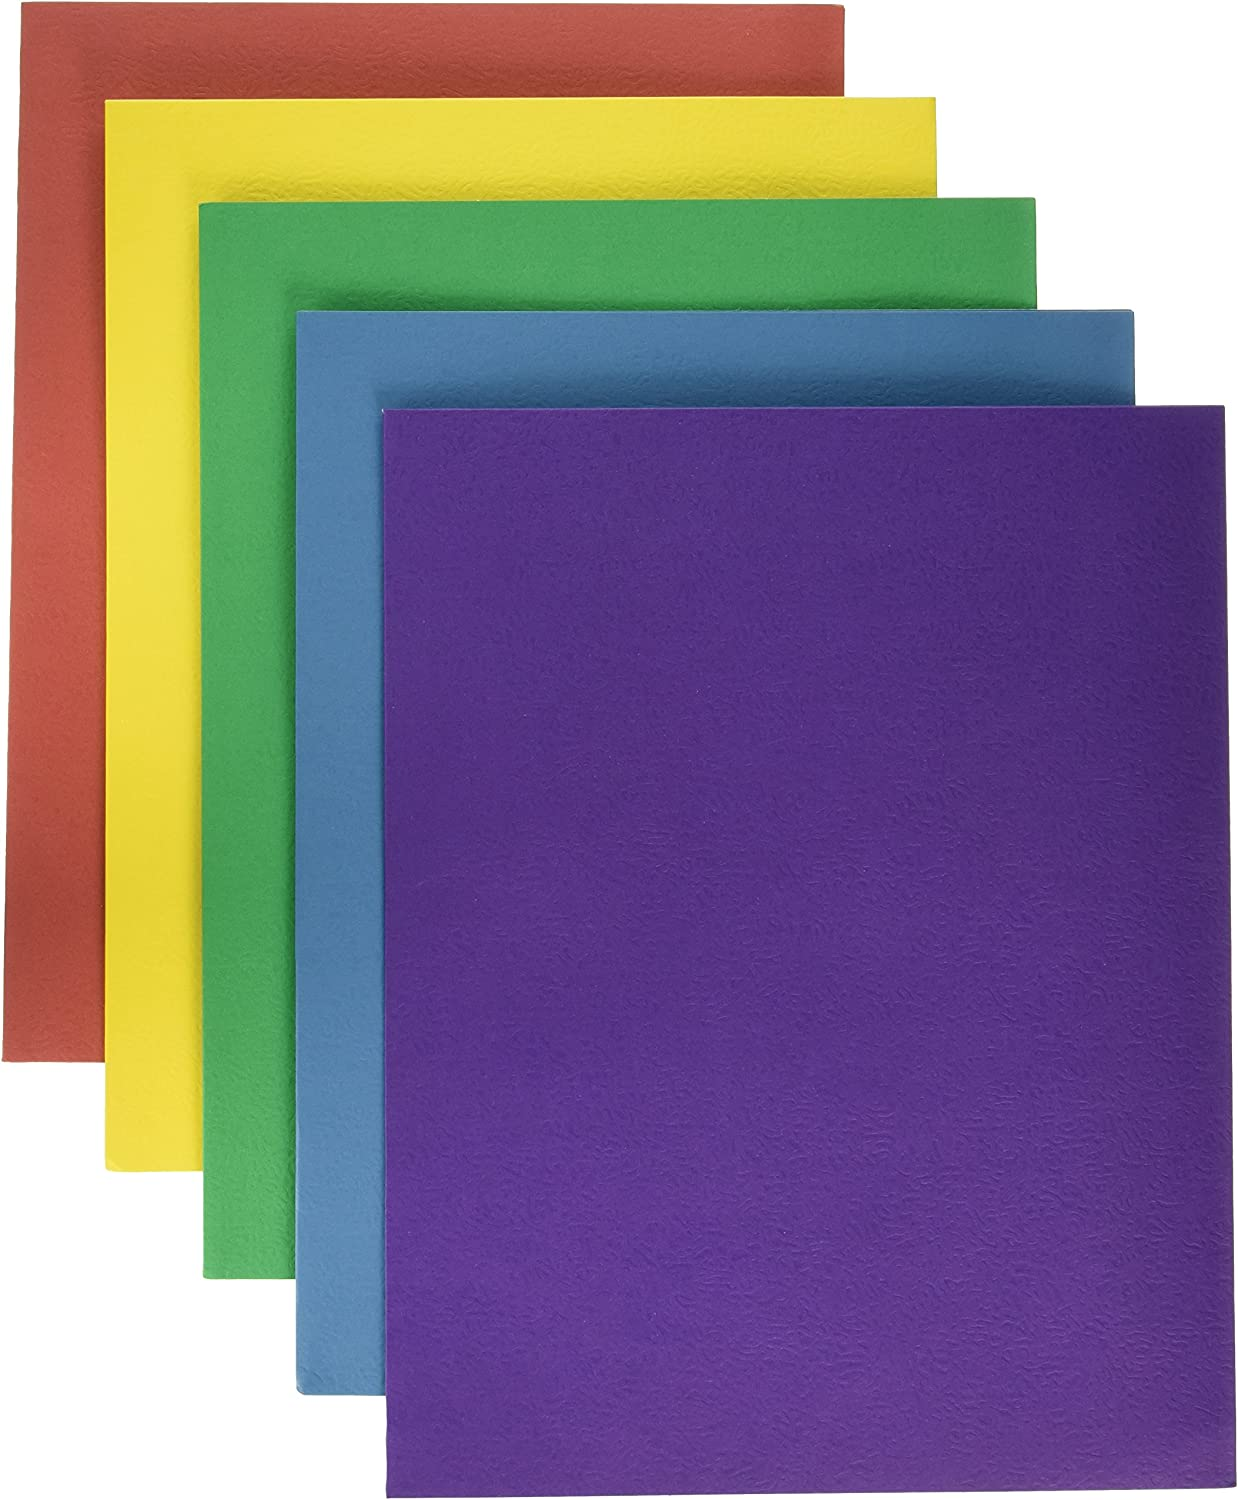 School Smart Extra Large 2-Pocket Folders, 9 x 12 Inches, Assorted Colors, Pack of 25 : Project Folders : Office Products